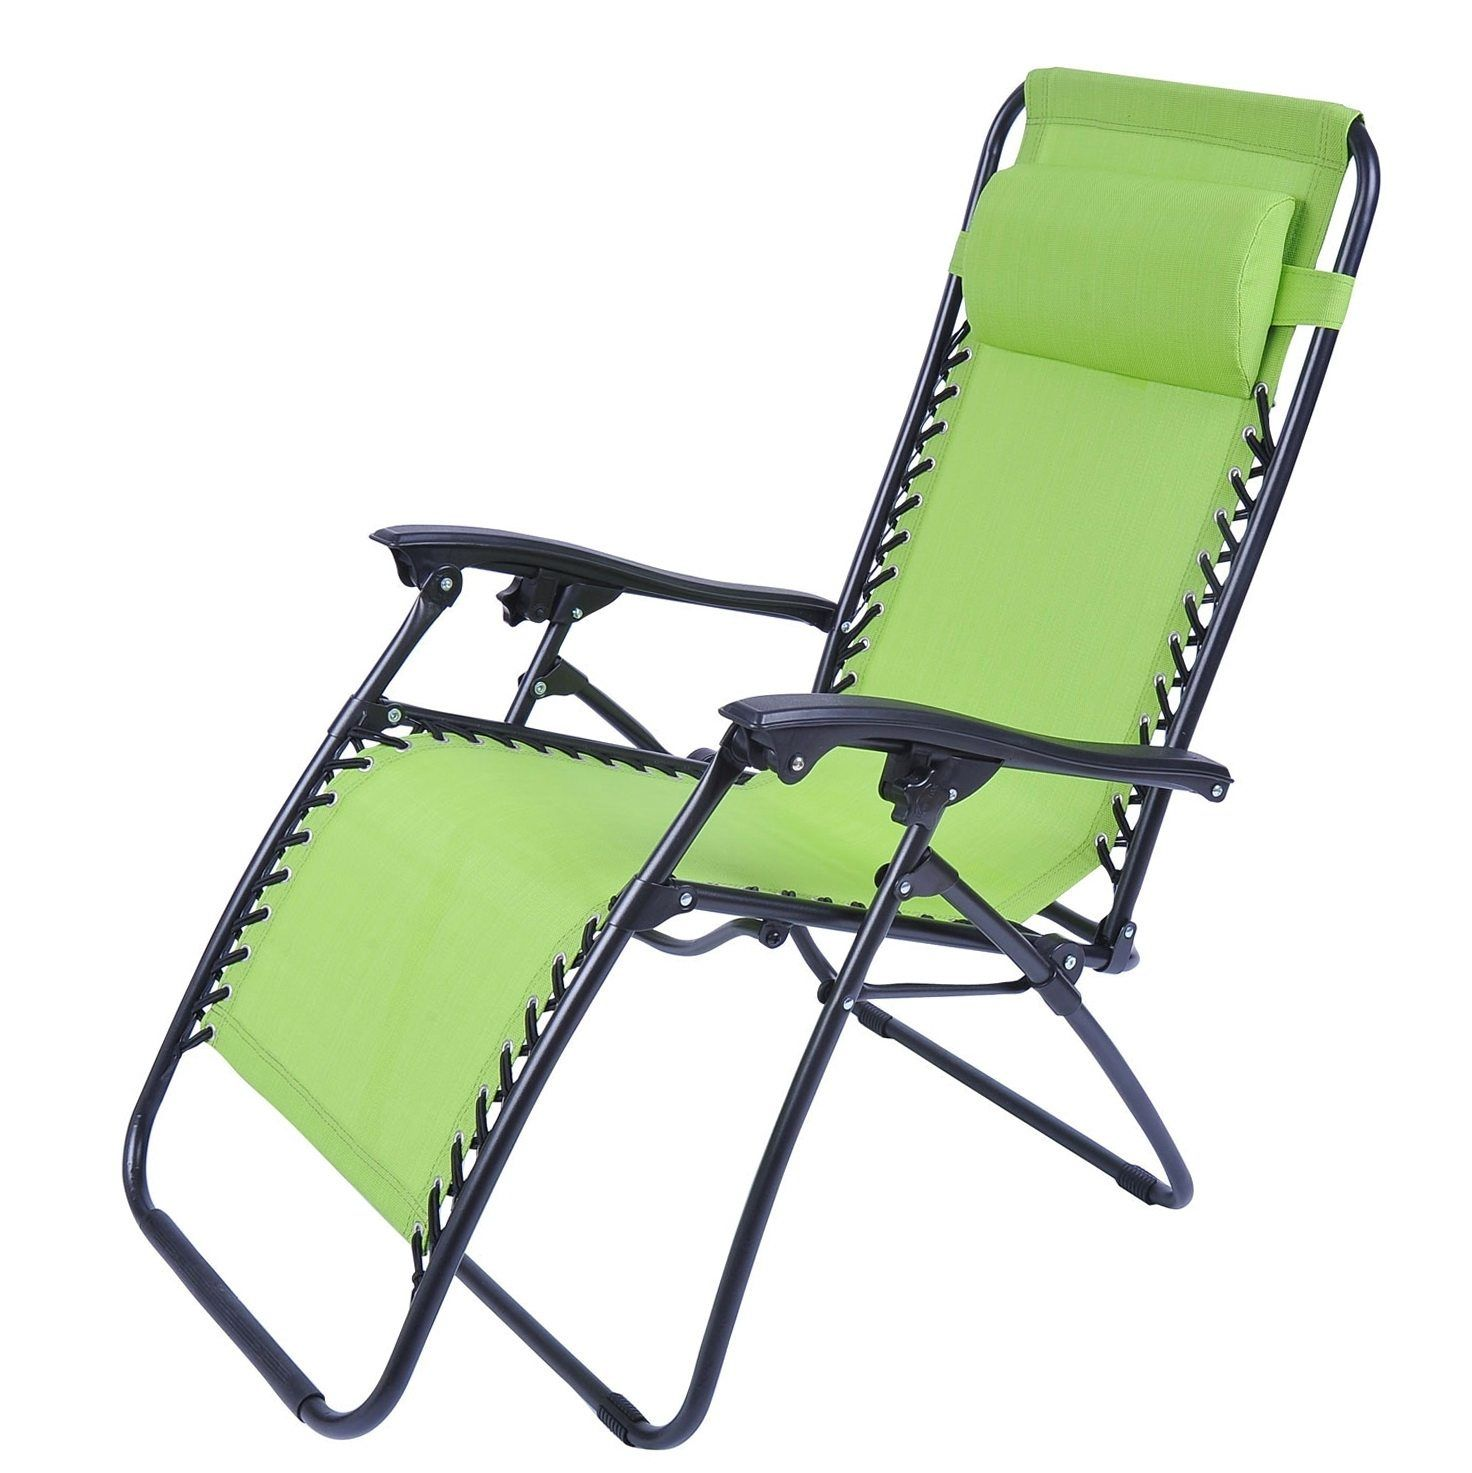 iron recliners of favorite wrought accent pertaining outdoor lounge chaise furniture to ideas chair chairs